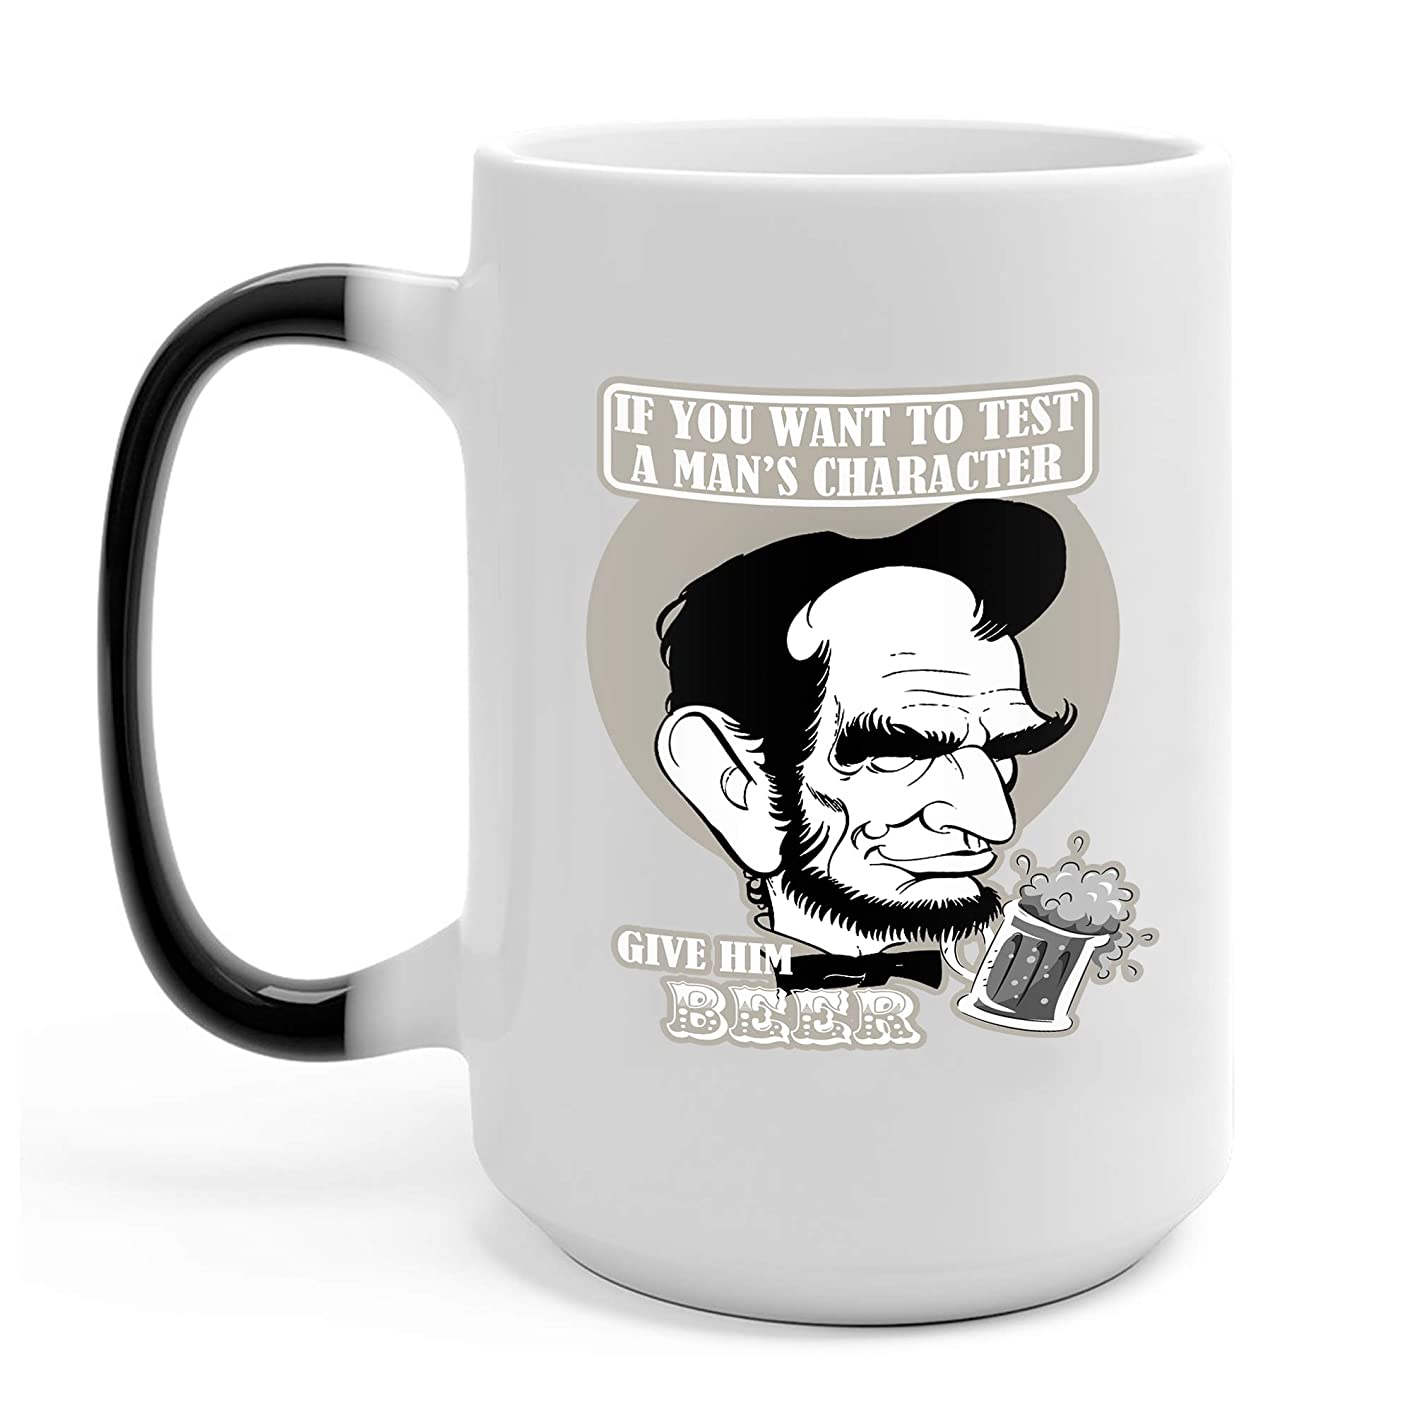 Abe Lincoln Beer 2 15 Oz Color Changing Coffee Mugs - Gifts for Independence Day